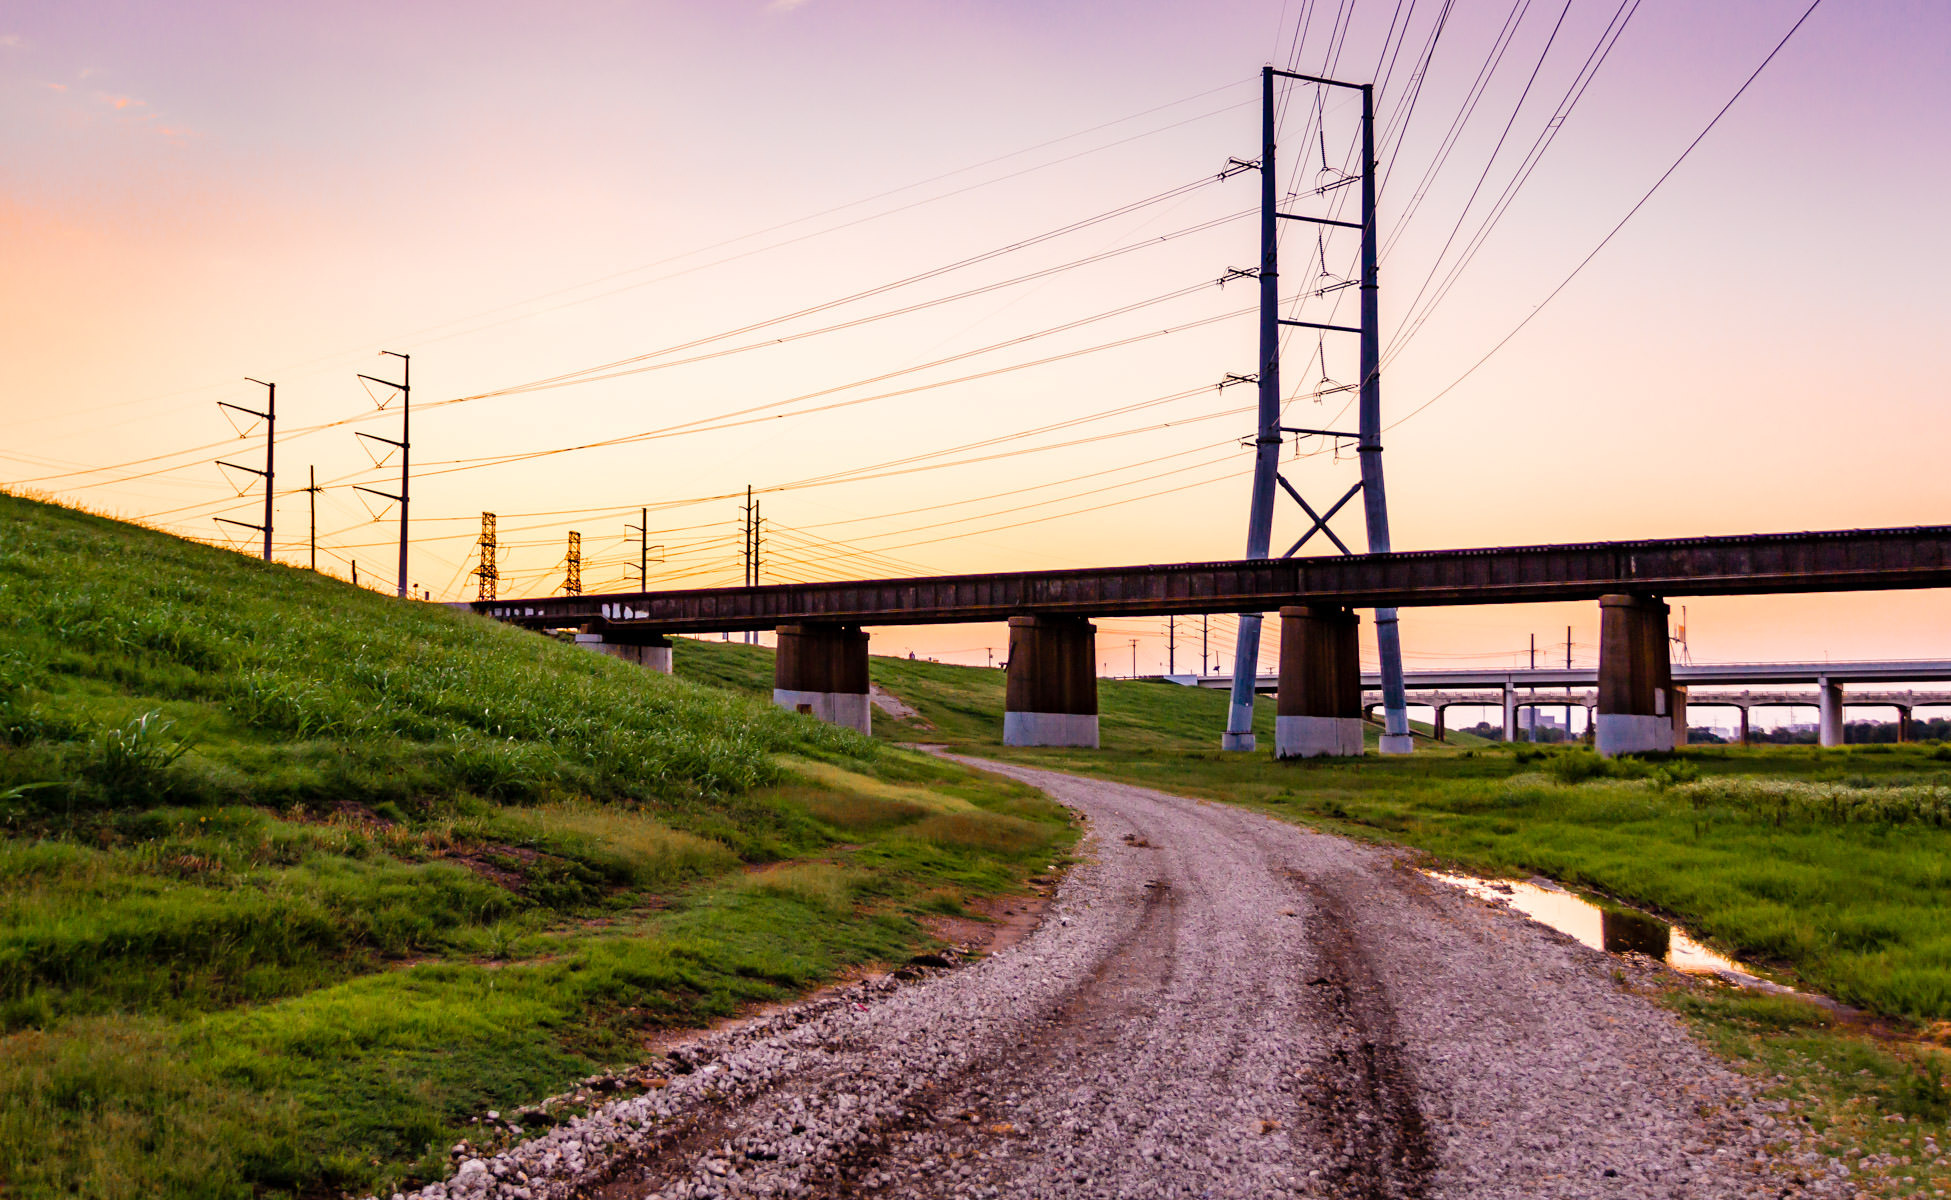 The sun sets in Dallas in this shot of bridges and power lines in the Trinity River corridor.